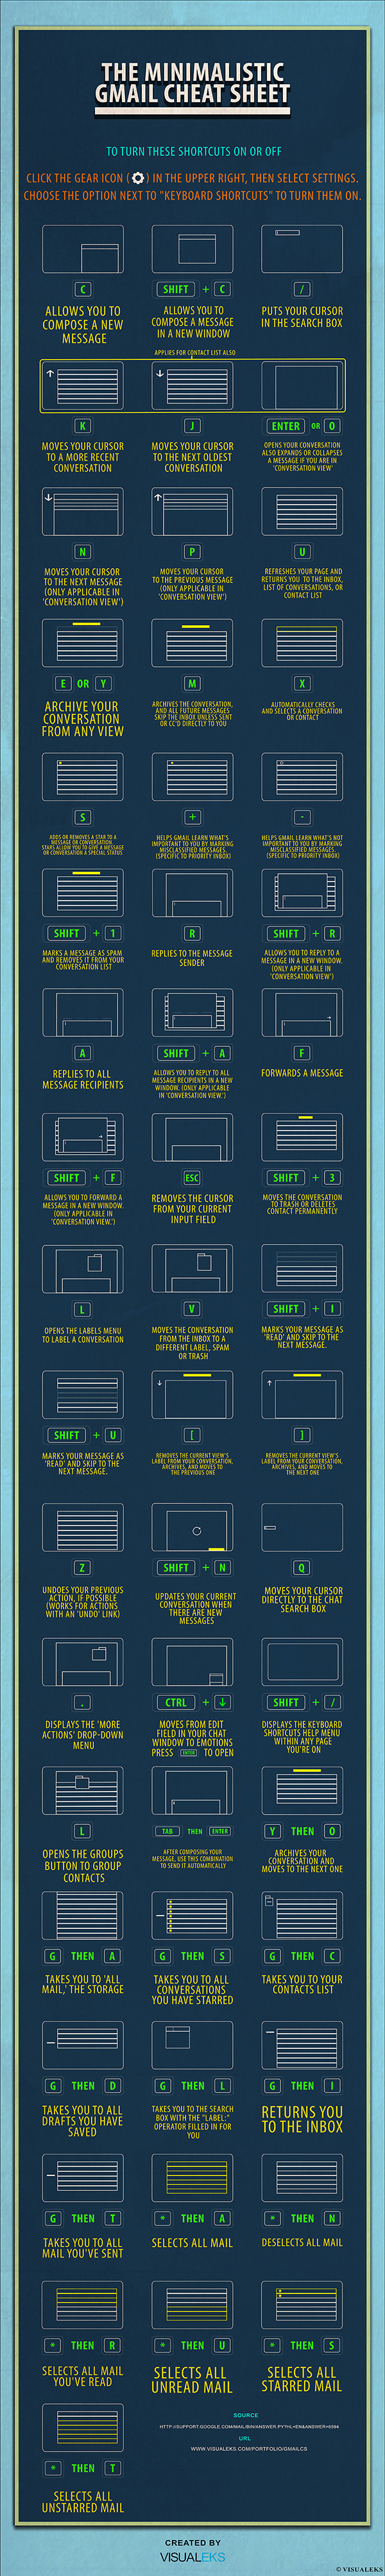 Gmail Shortcuts Infographic